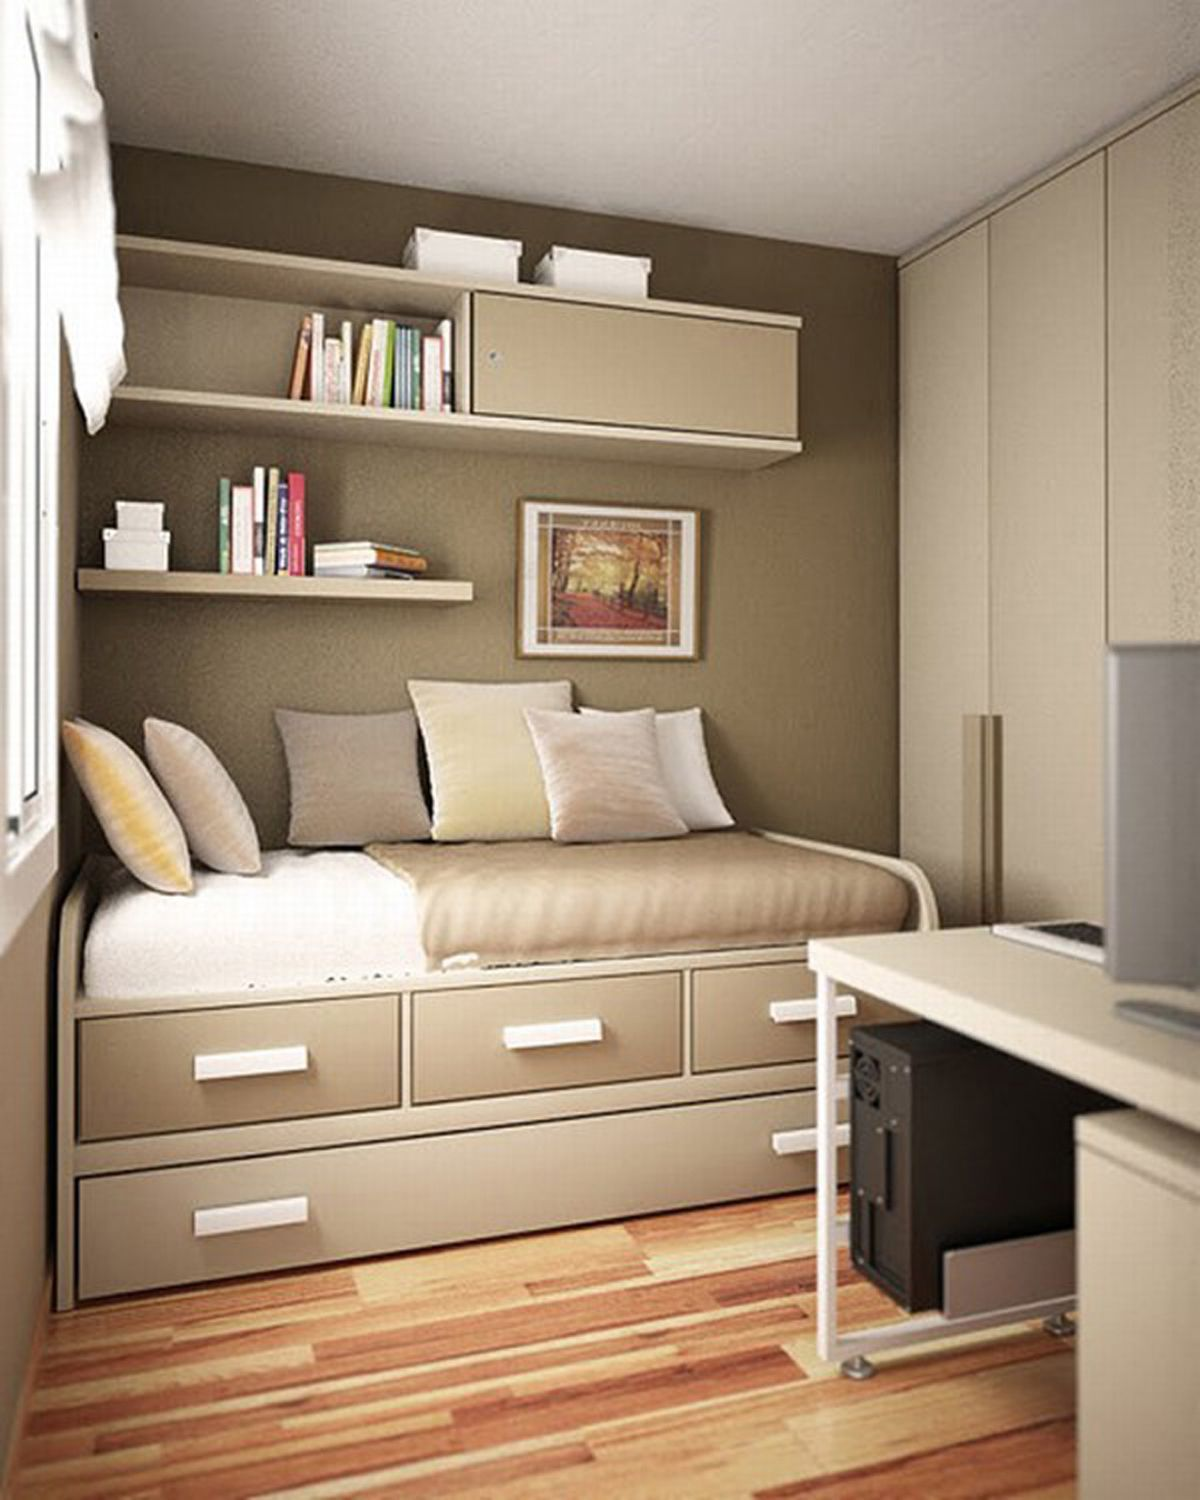 Image Result For Tiny Single Bedroom Ideas Small Bedroom Decor Small Space Bedroom Small Room Bedroom